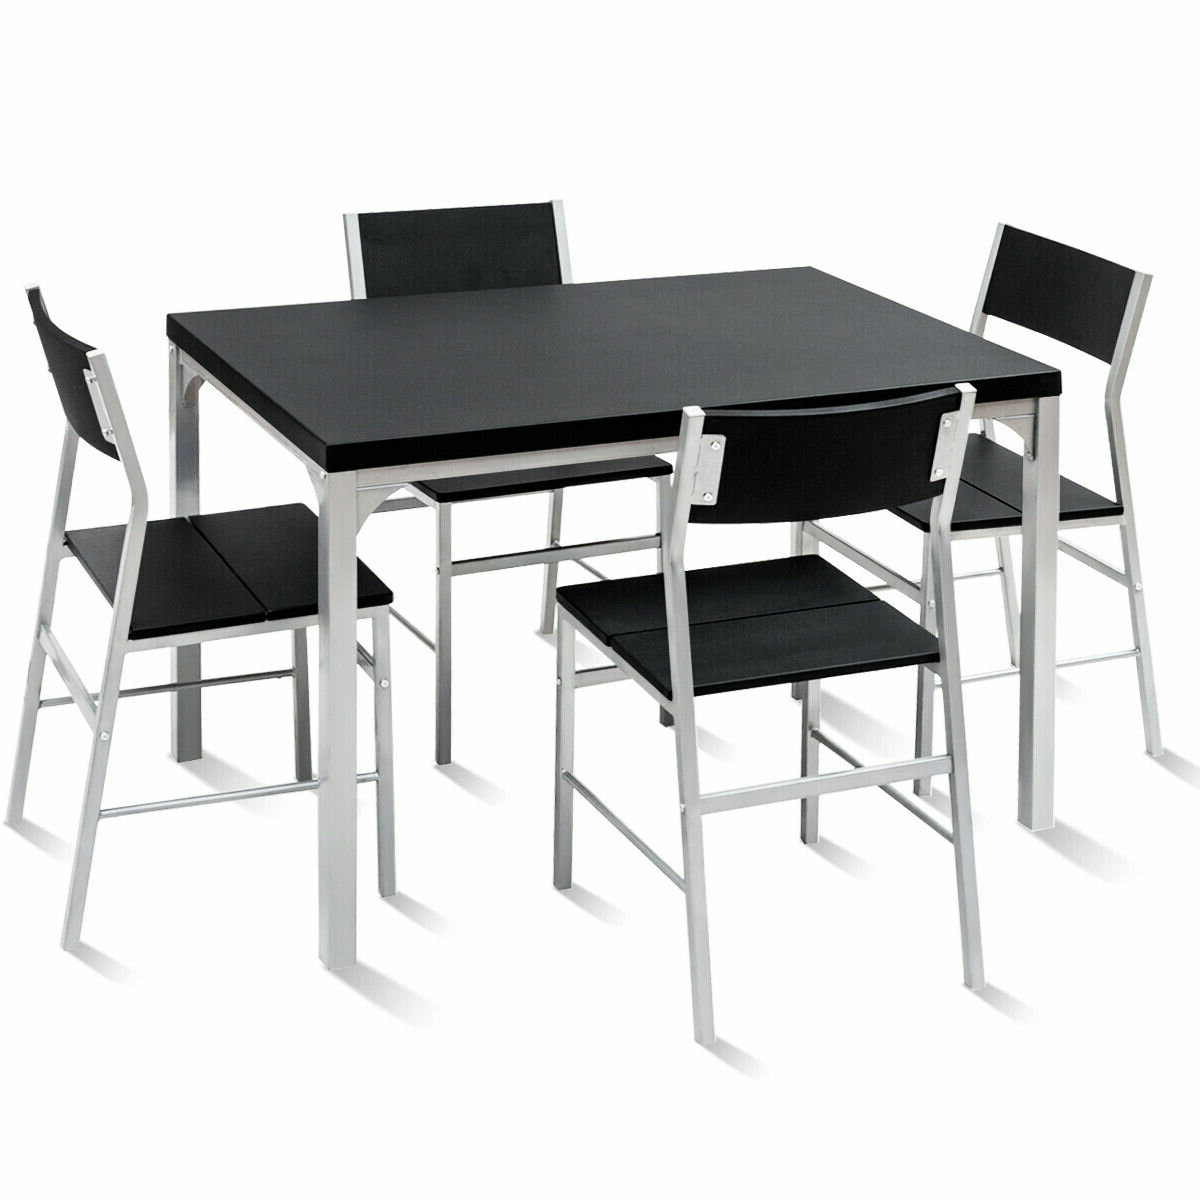 Wayfair In 2020 Stouferberg 5 Piece Dining Sets (View 6 of 25)